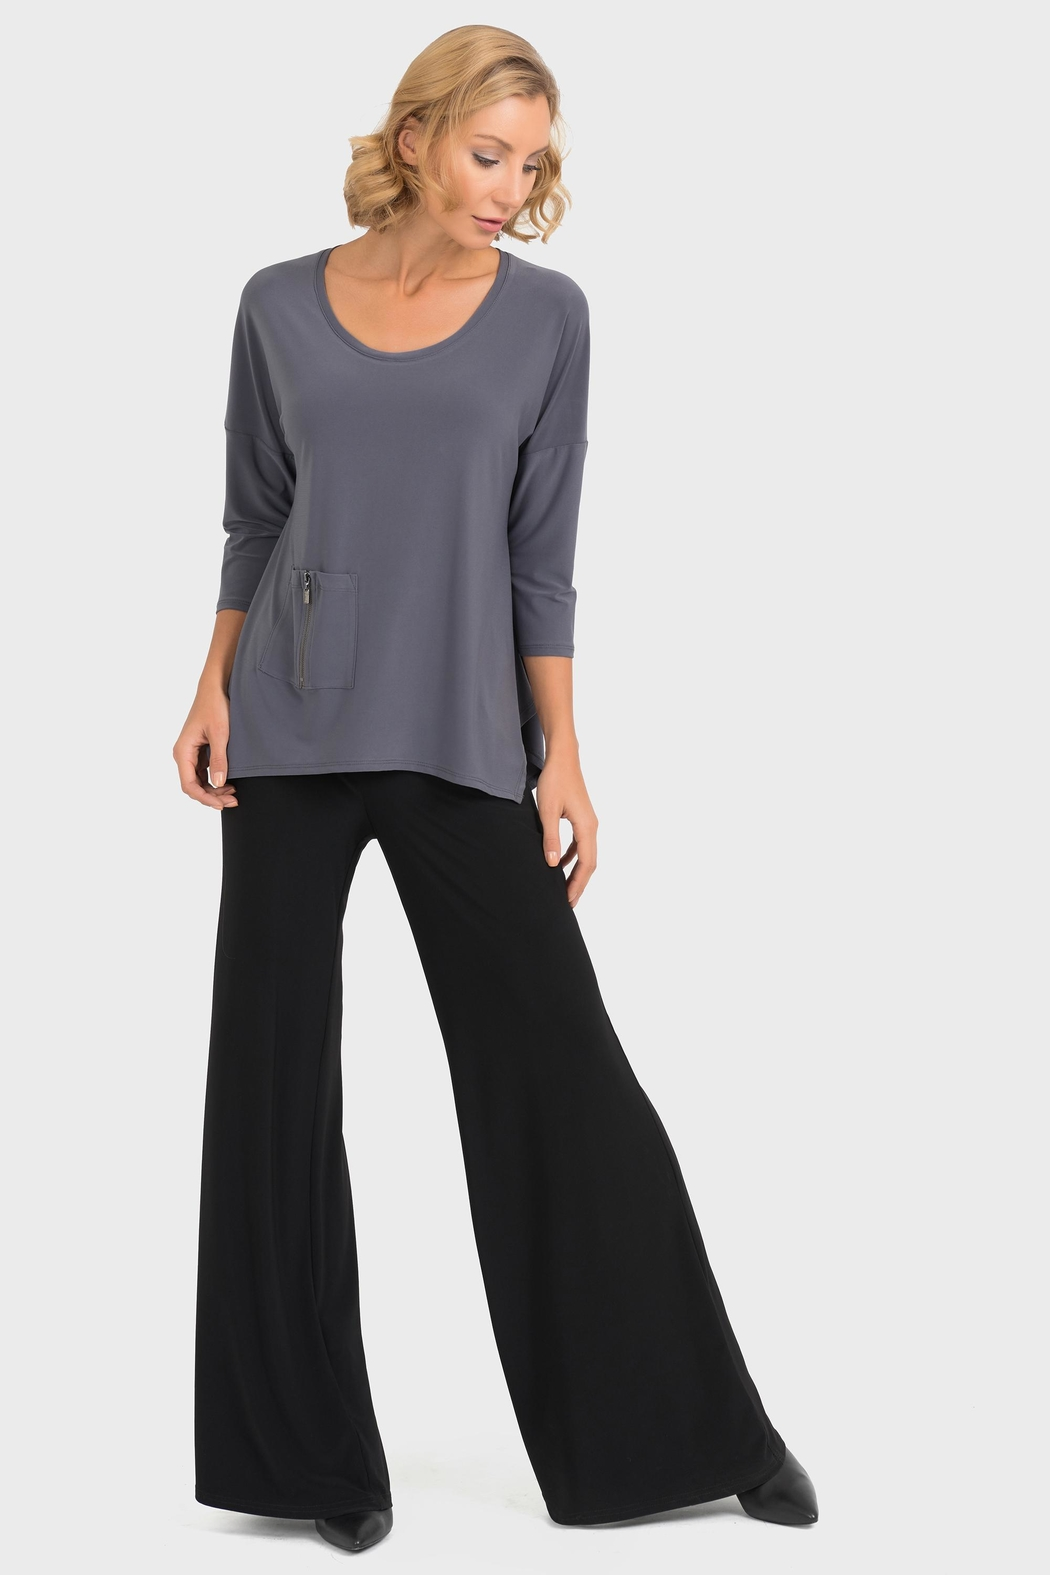 Joseph Ribkoff Smokey Grey Top - Main Image